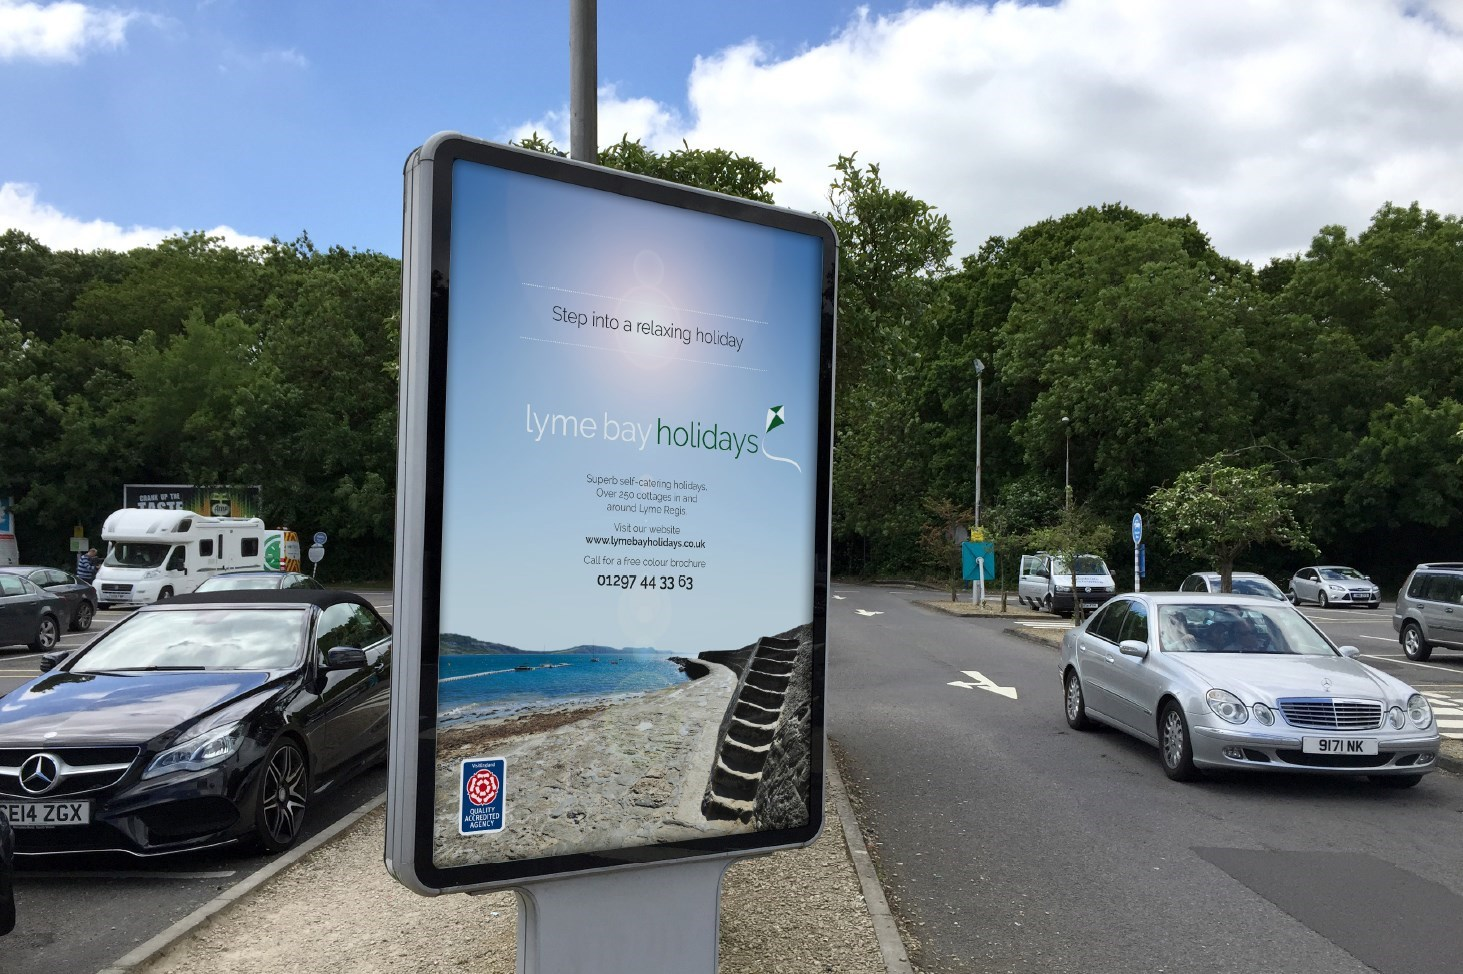 Image of Lyme Bay Holidays advertising sign